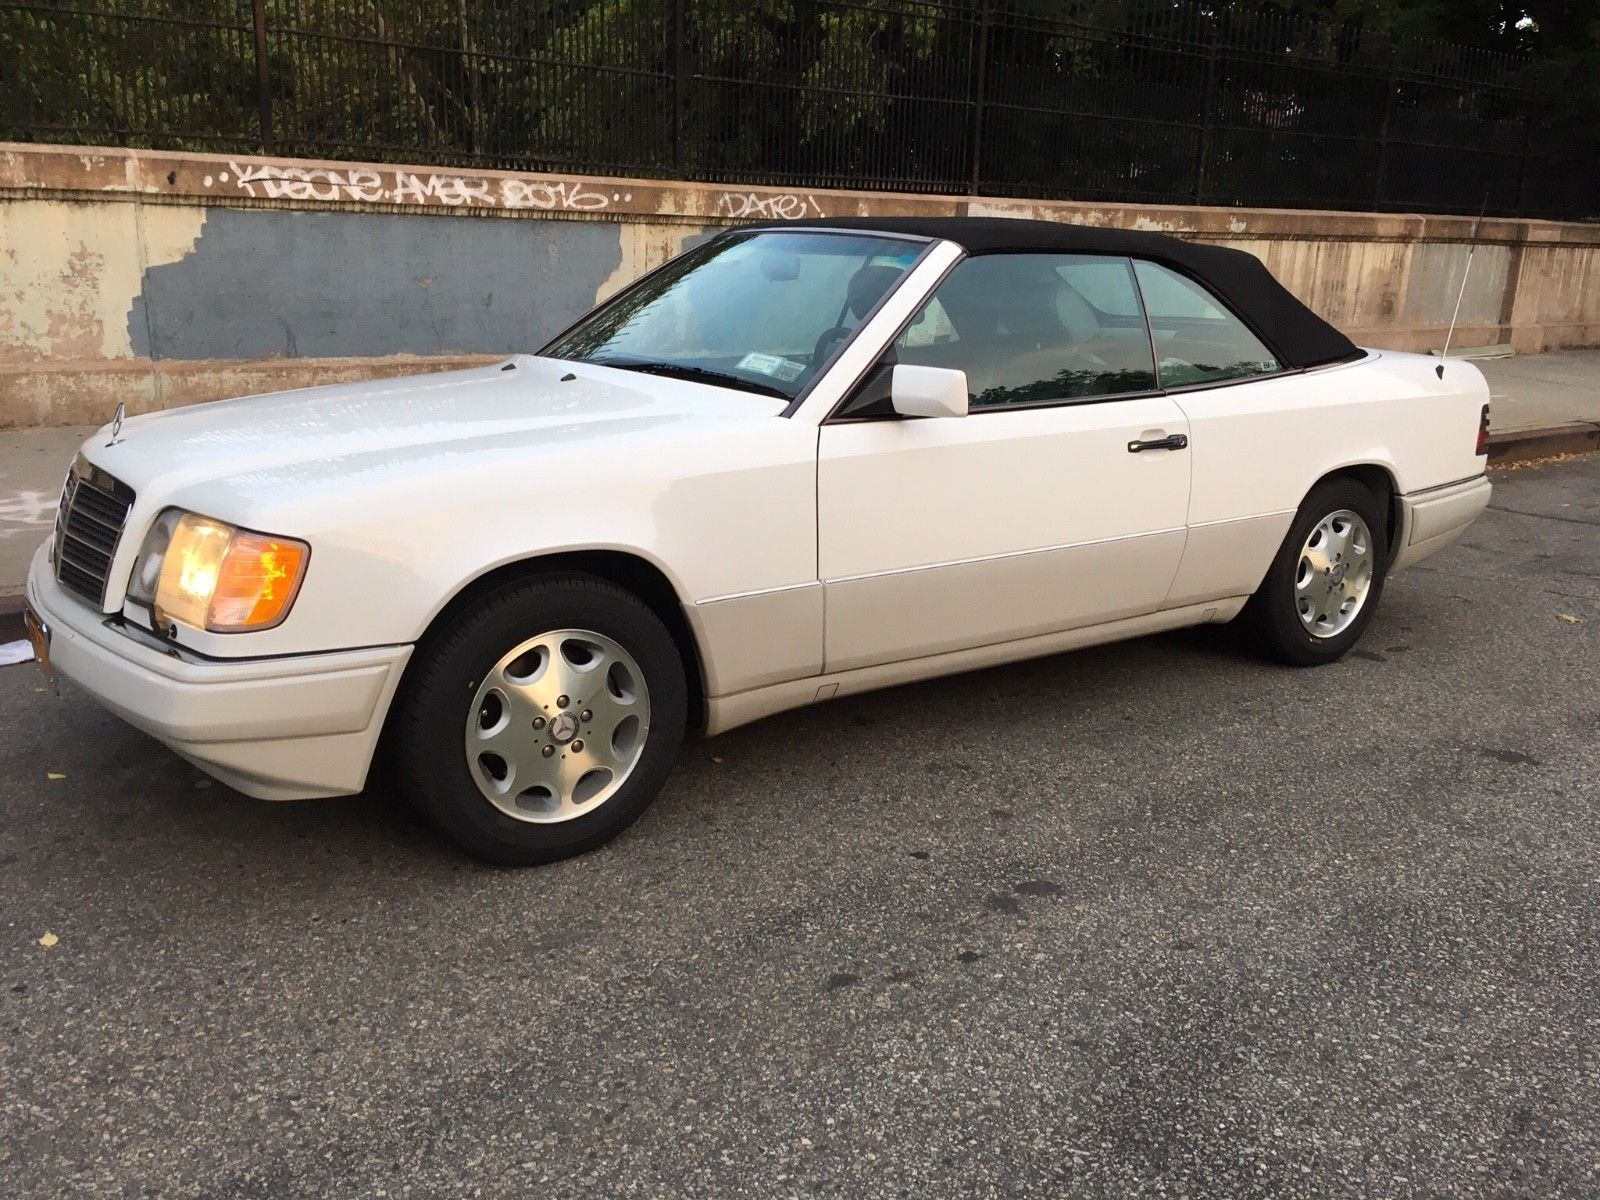 this 1995 mercedes benz e320 cabriolet is one of the last of the old guard hagerty media this 1995 mercedes benz e320 cabriolet